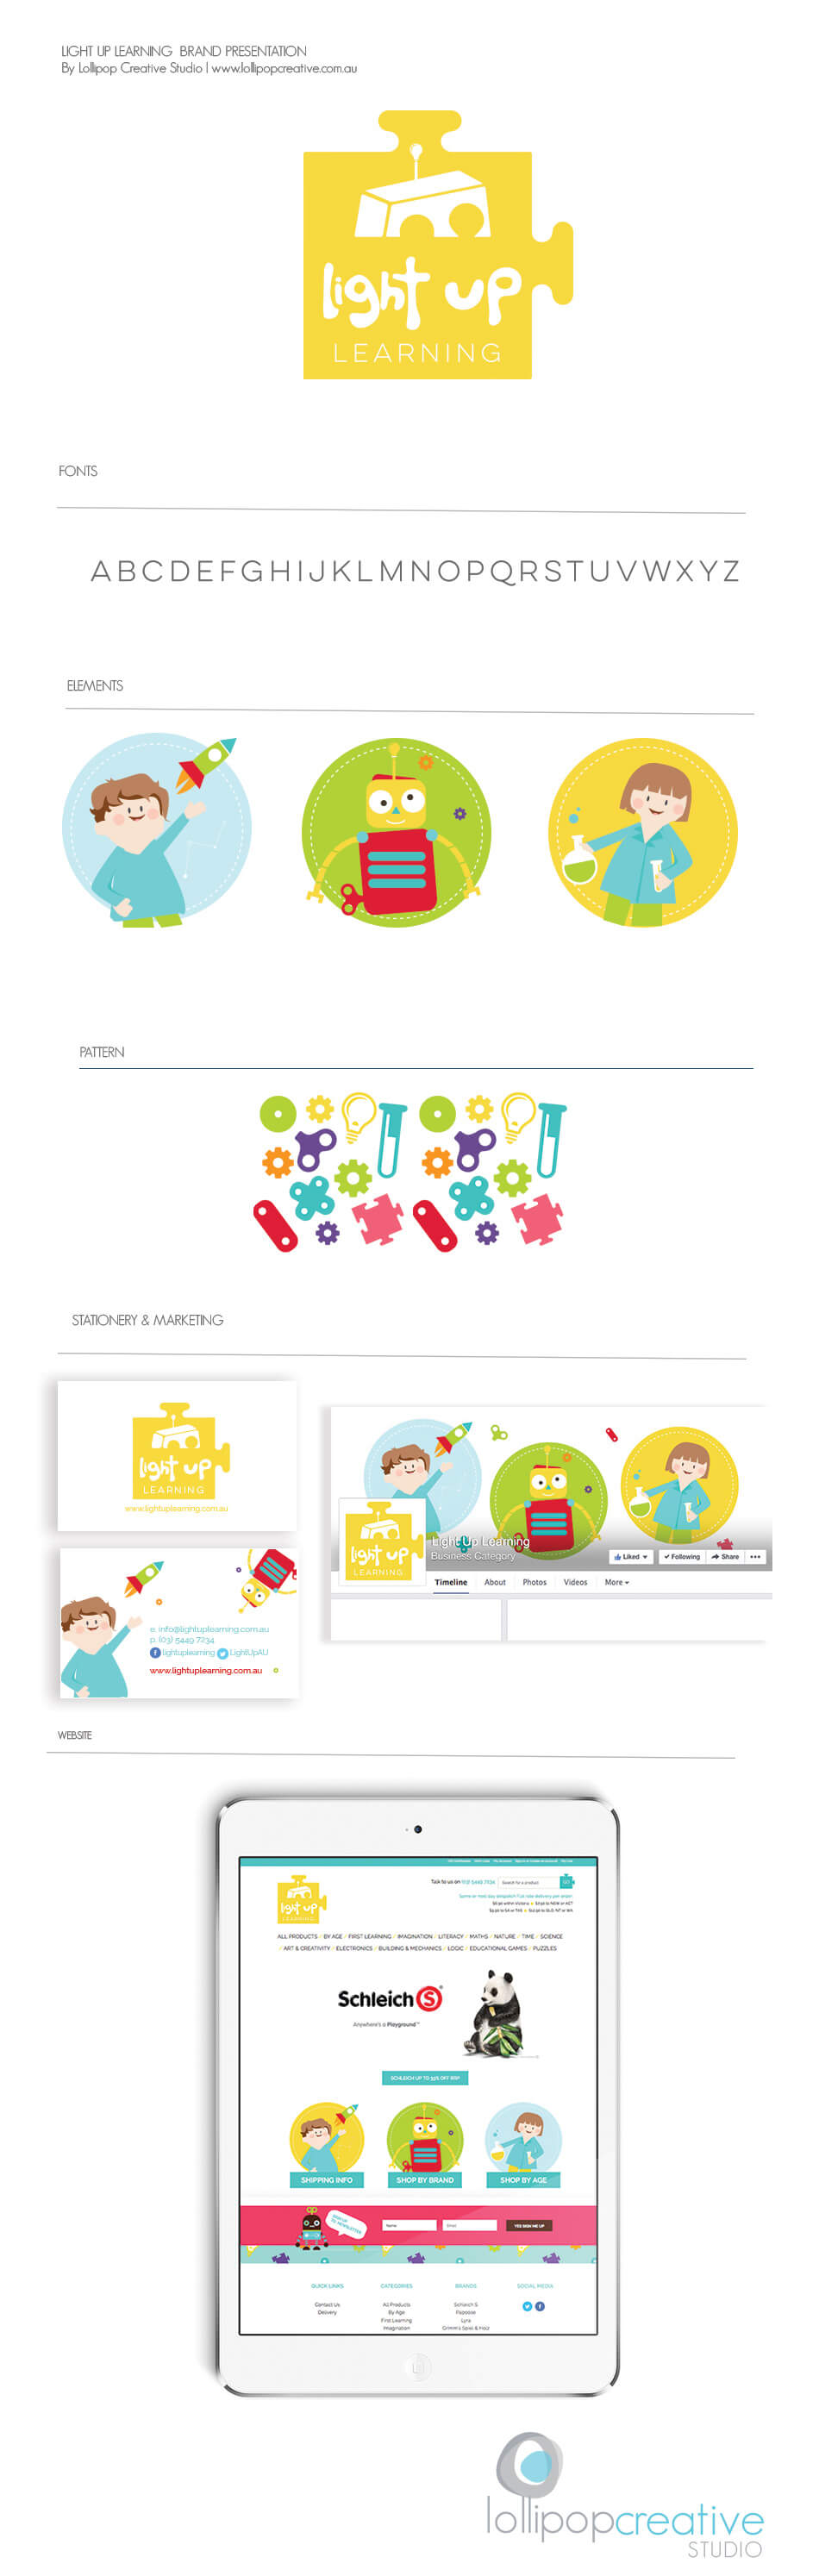 Light-Up-Learning-Brand-Board